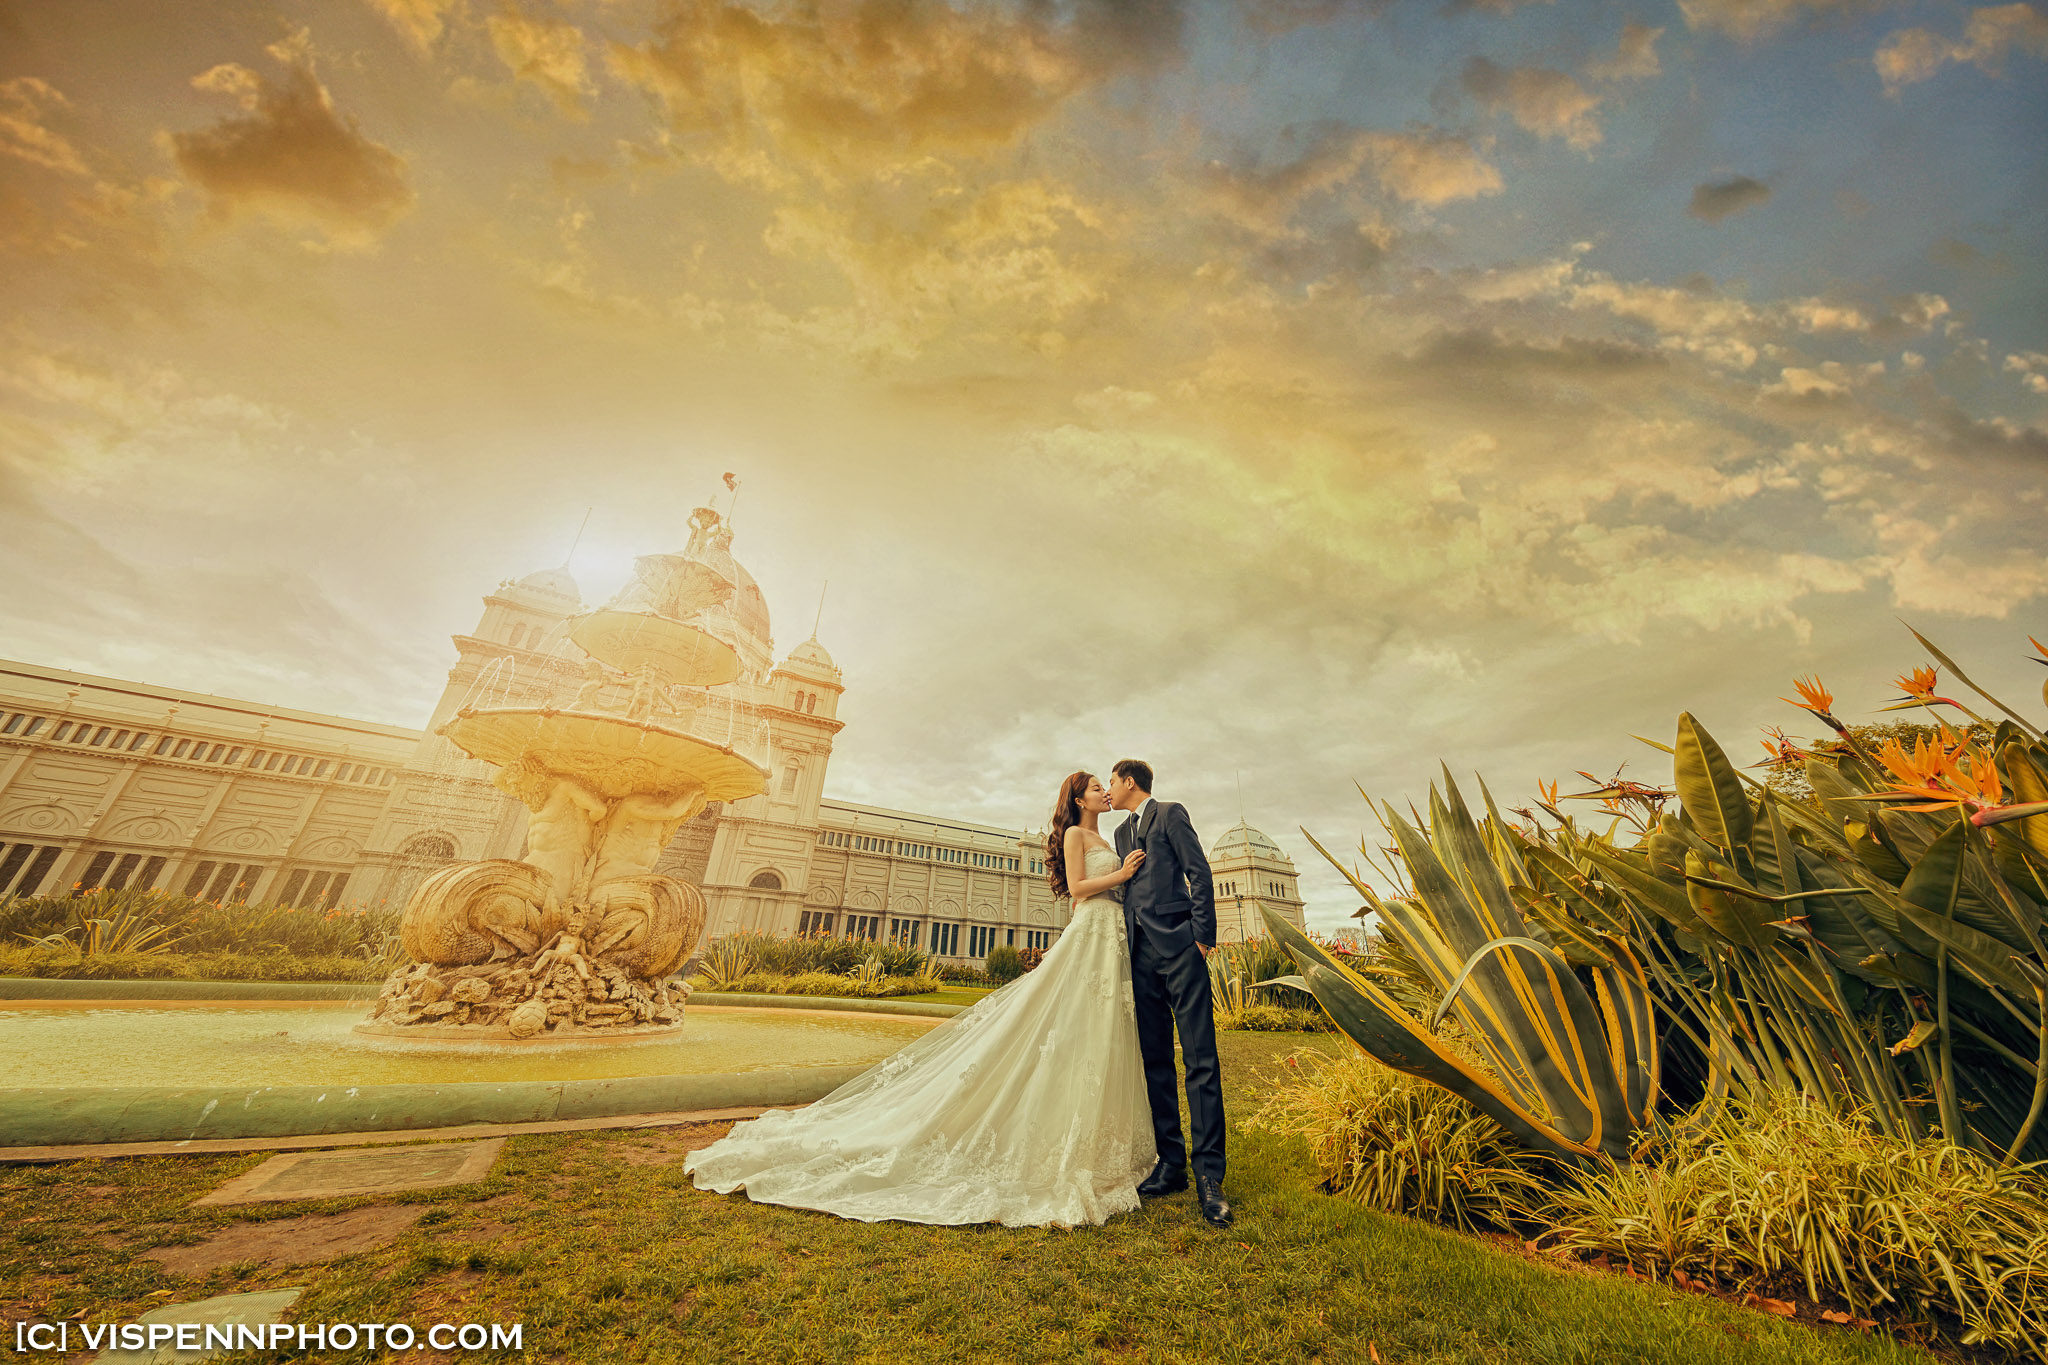 PRE WEDDING Photography Melbourne ZHPENN JackySerena 1438 1